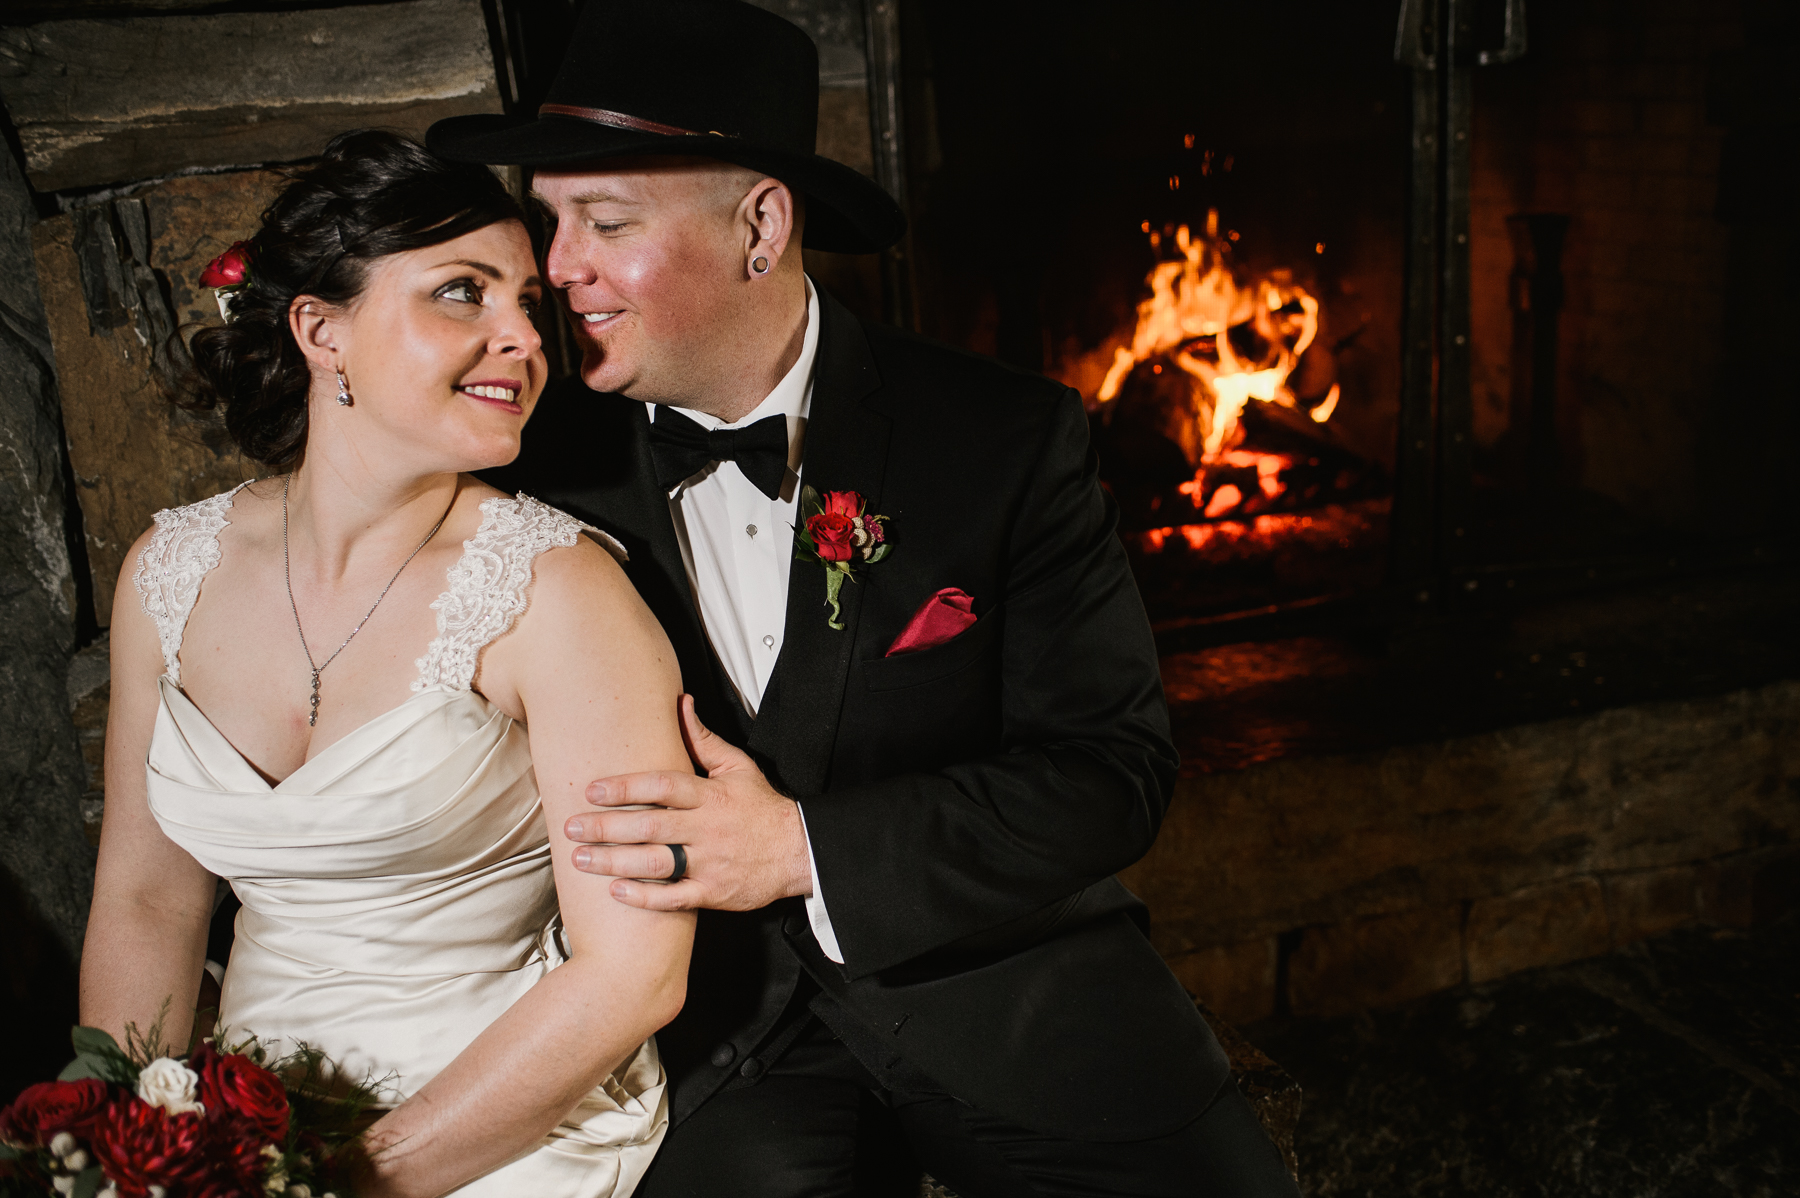 moonlight lodge tavern fire place bride and groom